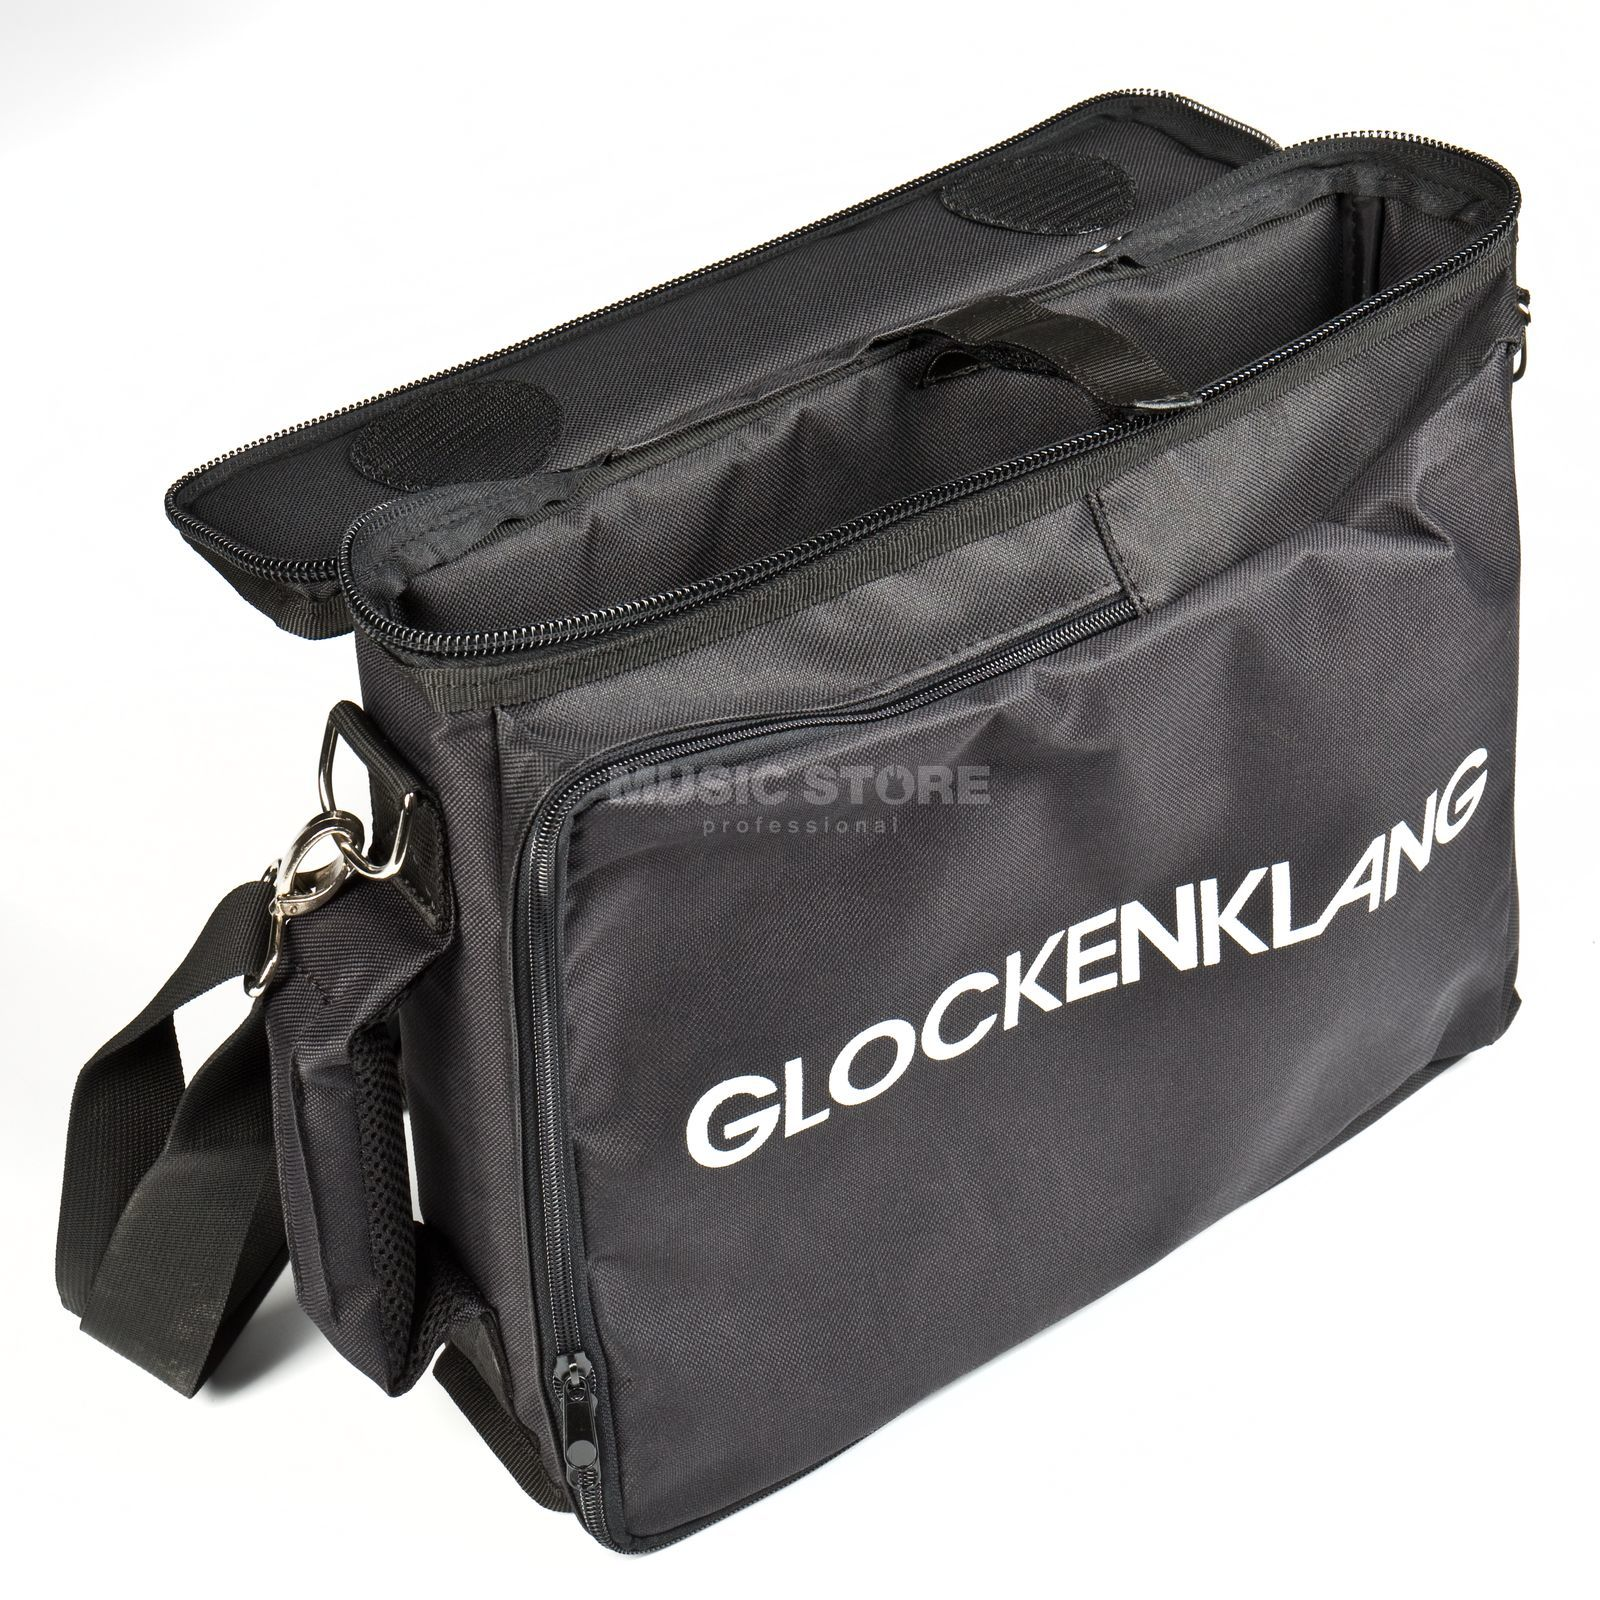 Glockenklang Steamhammer Bag Product Image